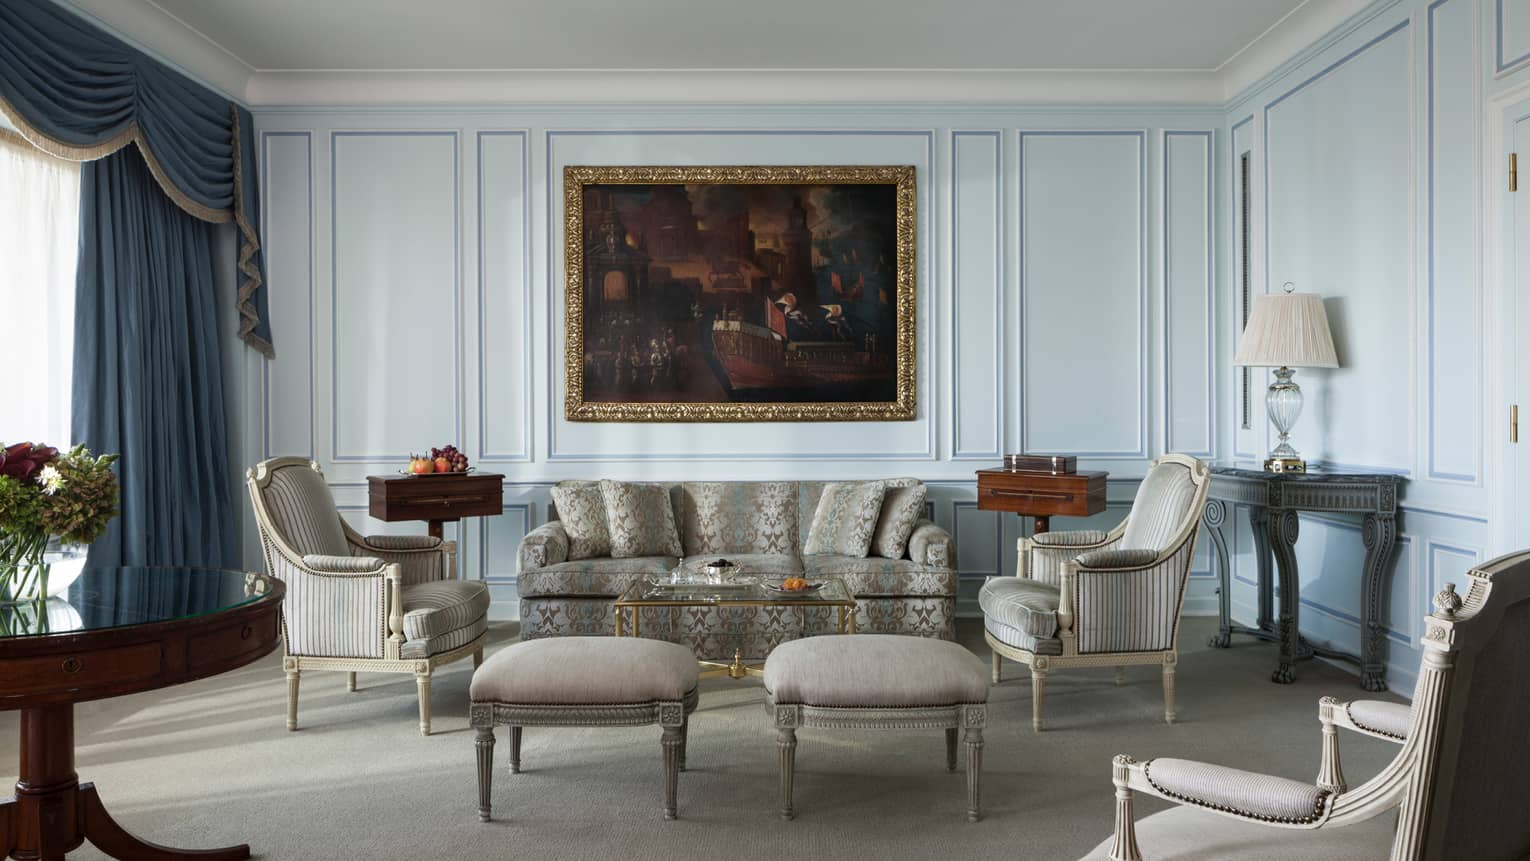 Sunny Grand One-Bedroom Suite with light grey-and-blue velvet sofa, chairs, large oil painting with gold frame